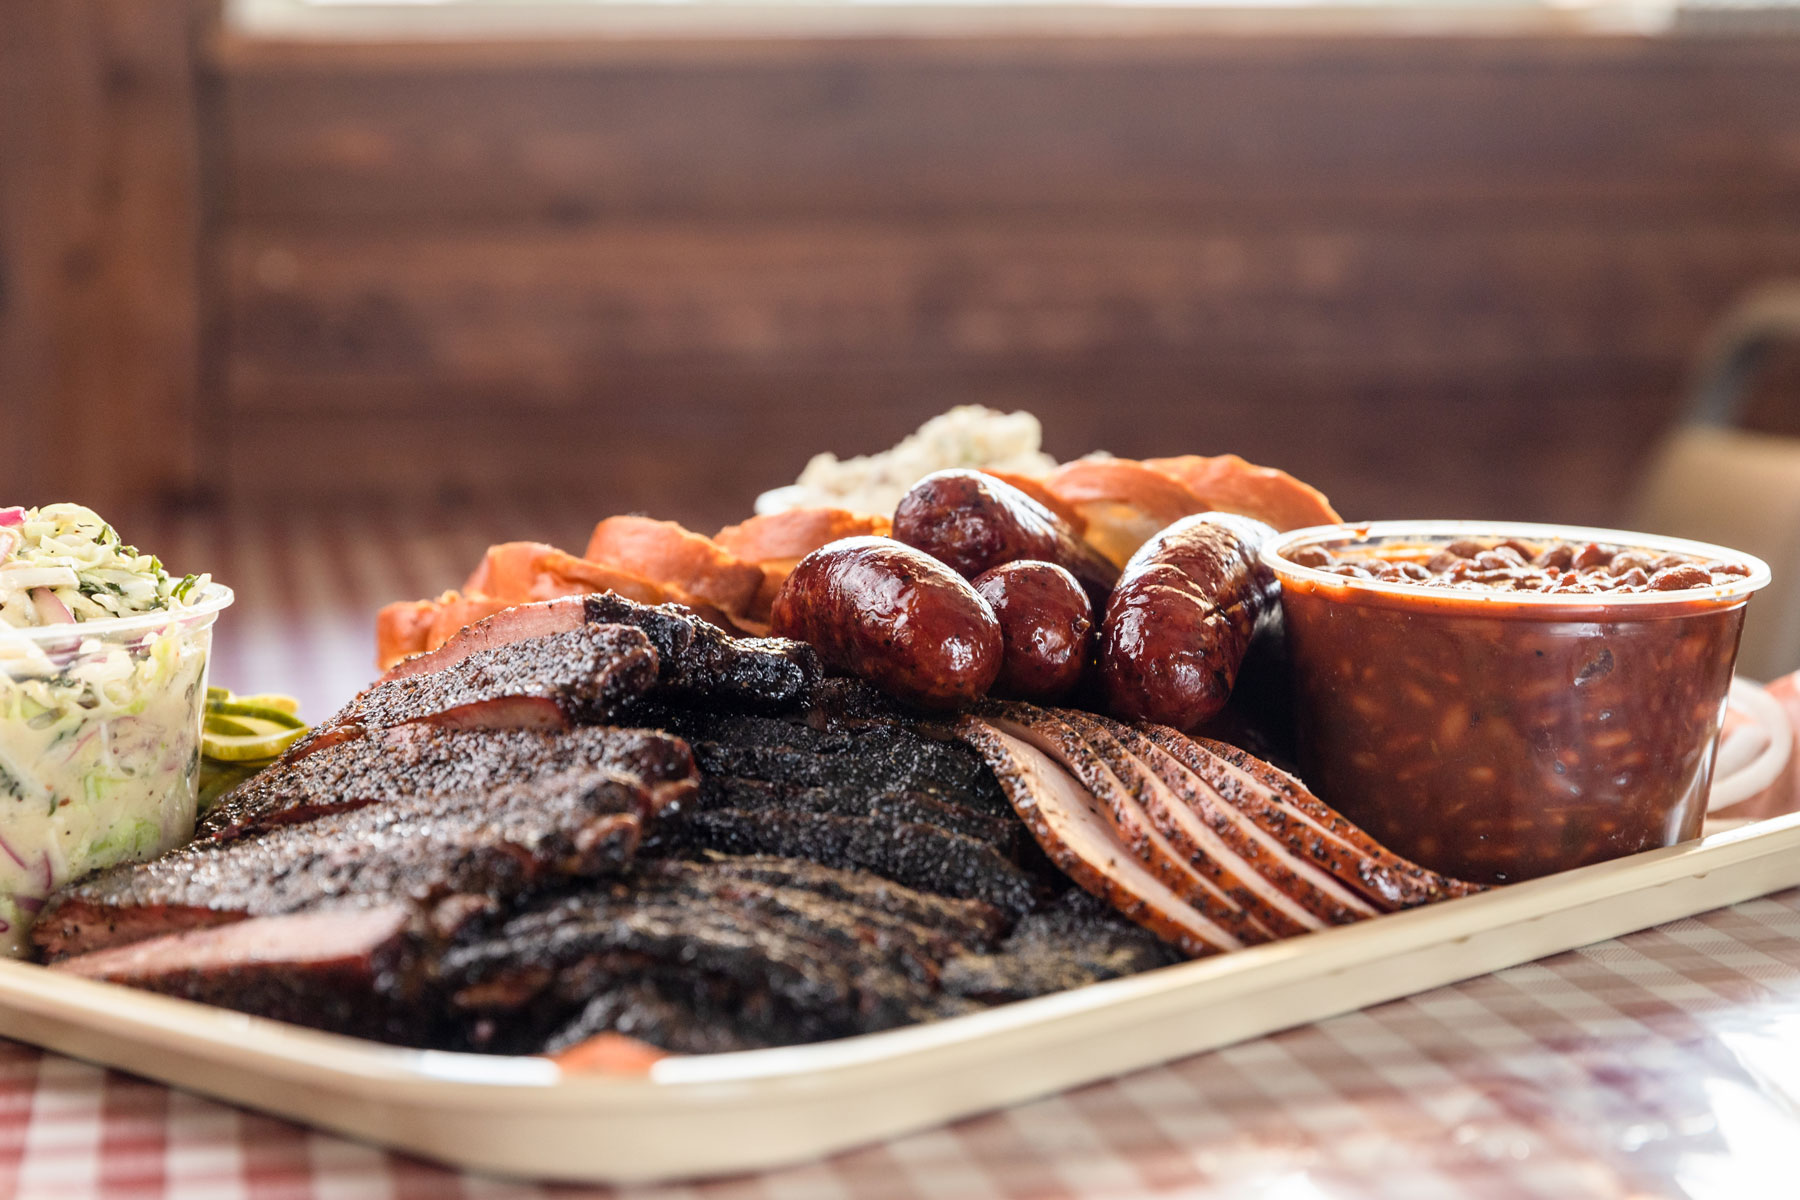 Barbecue ribs, sausage, brisket, beans, and cole slaw